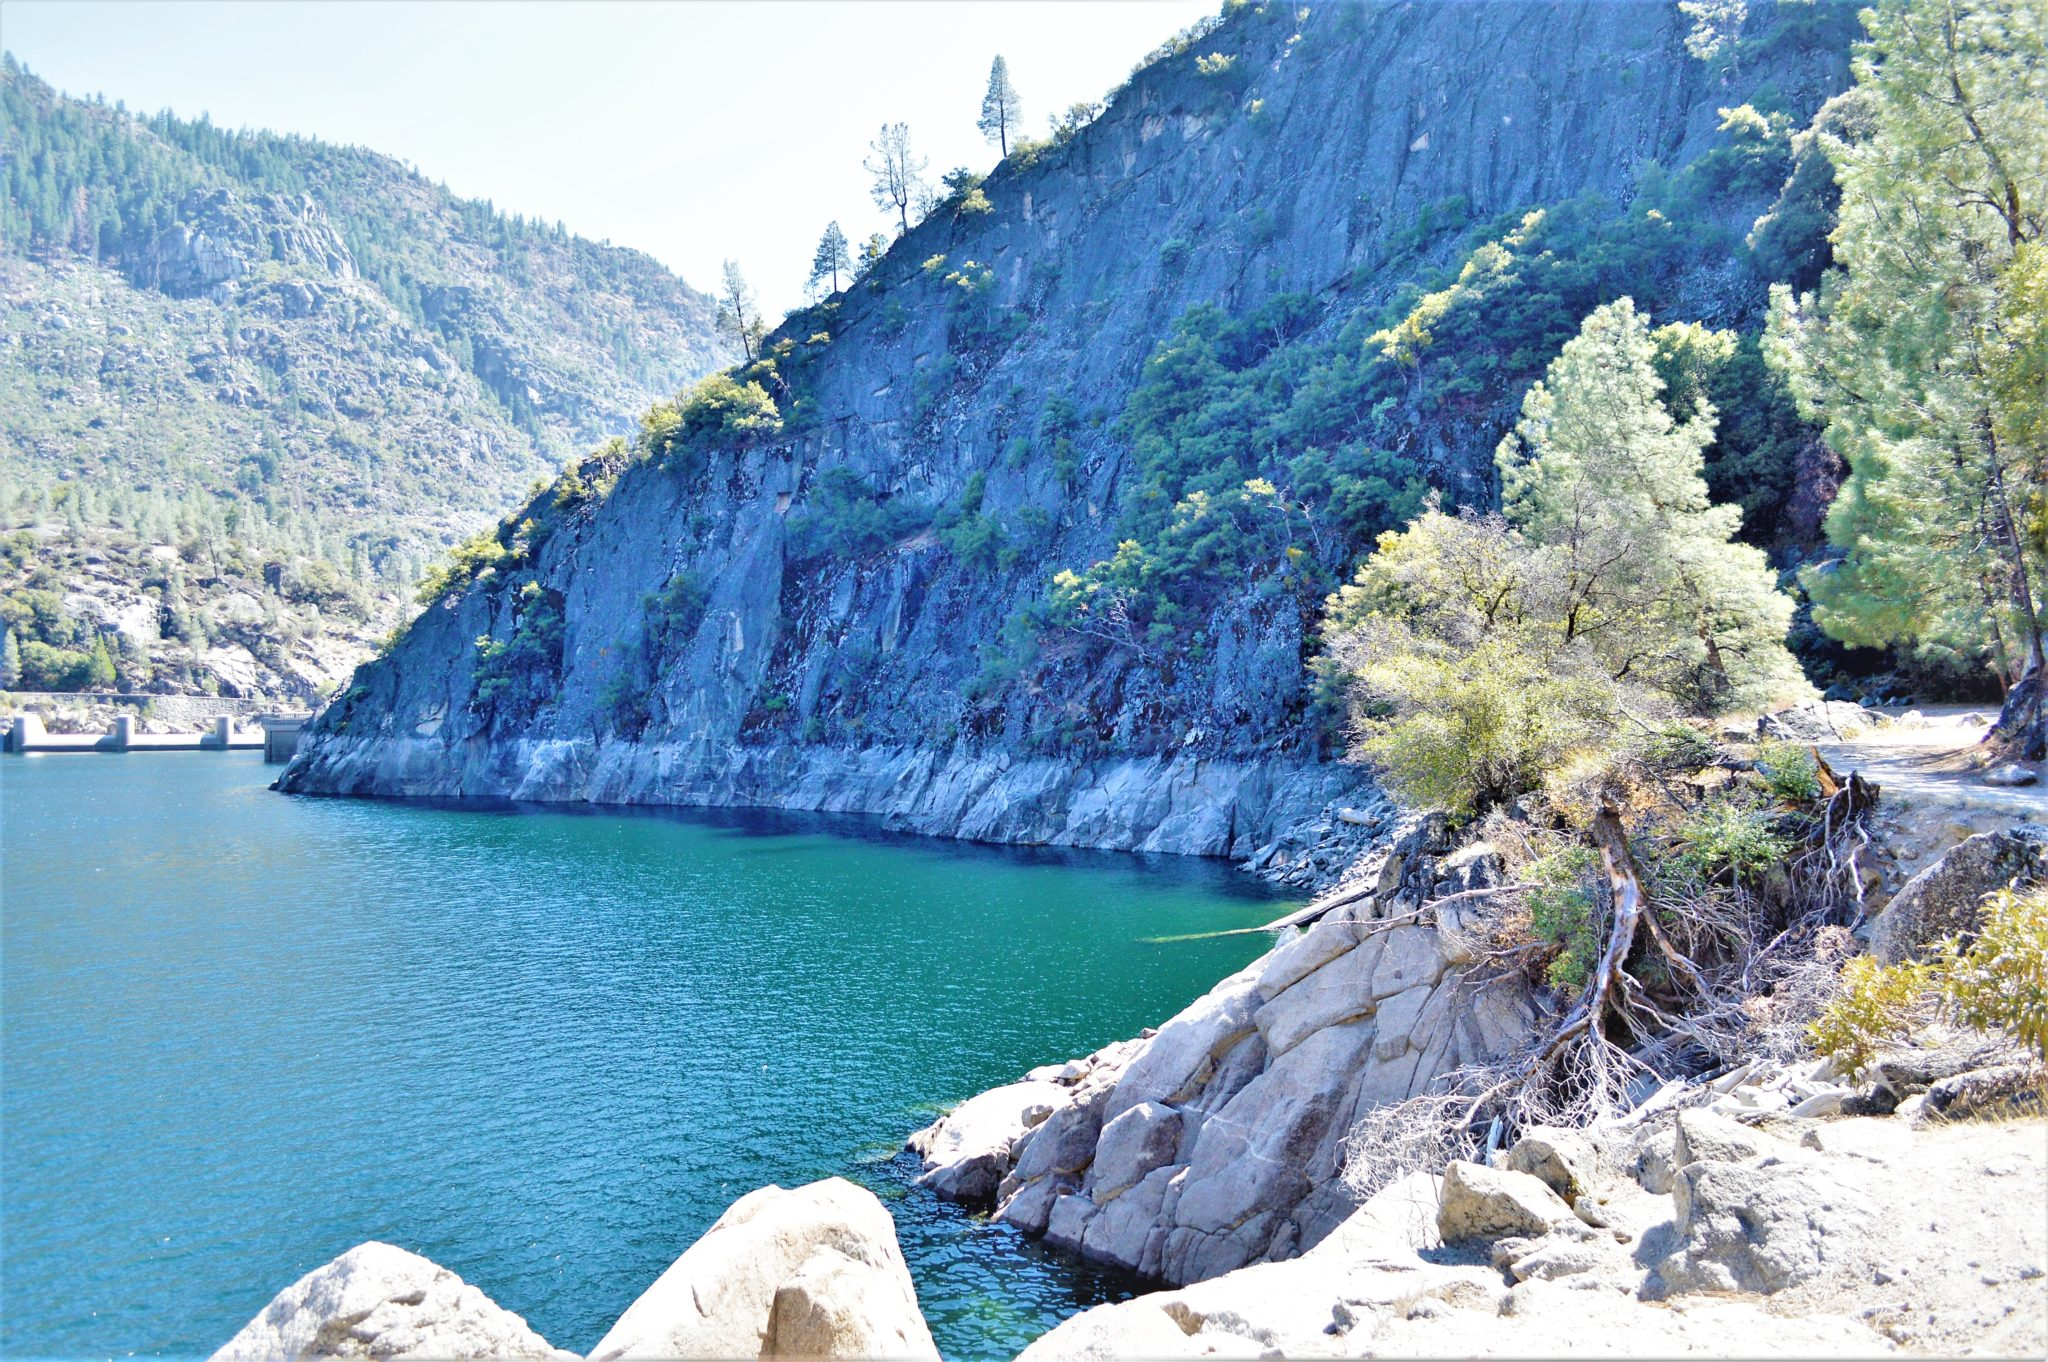 Drought wall at Hetch Hetchy reservoir, California